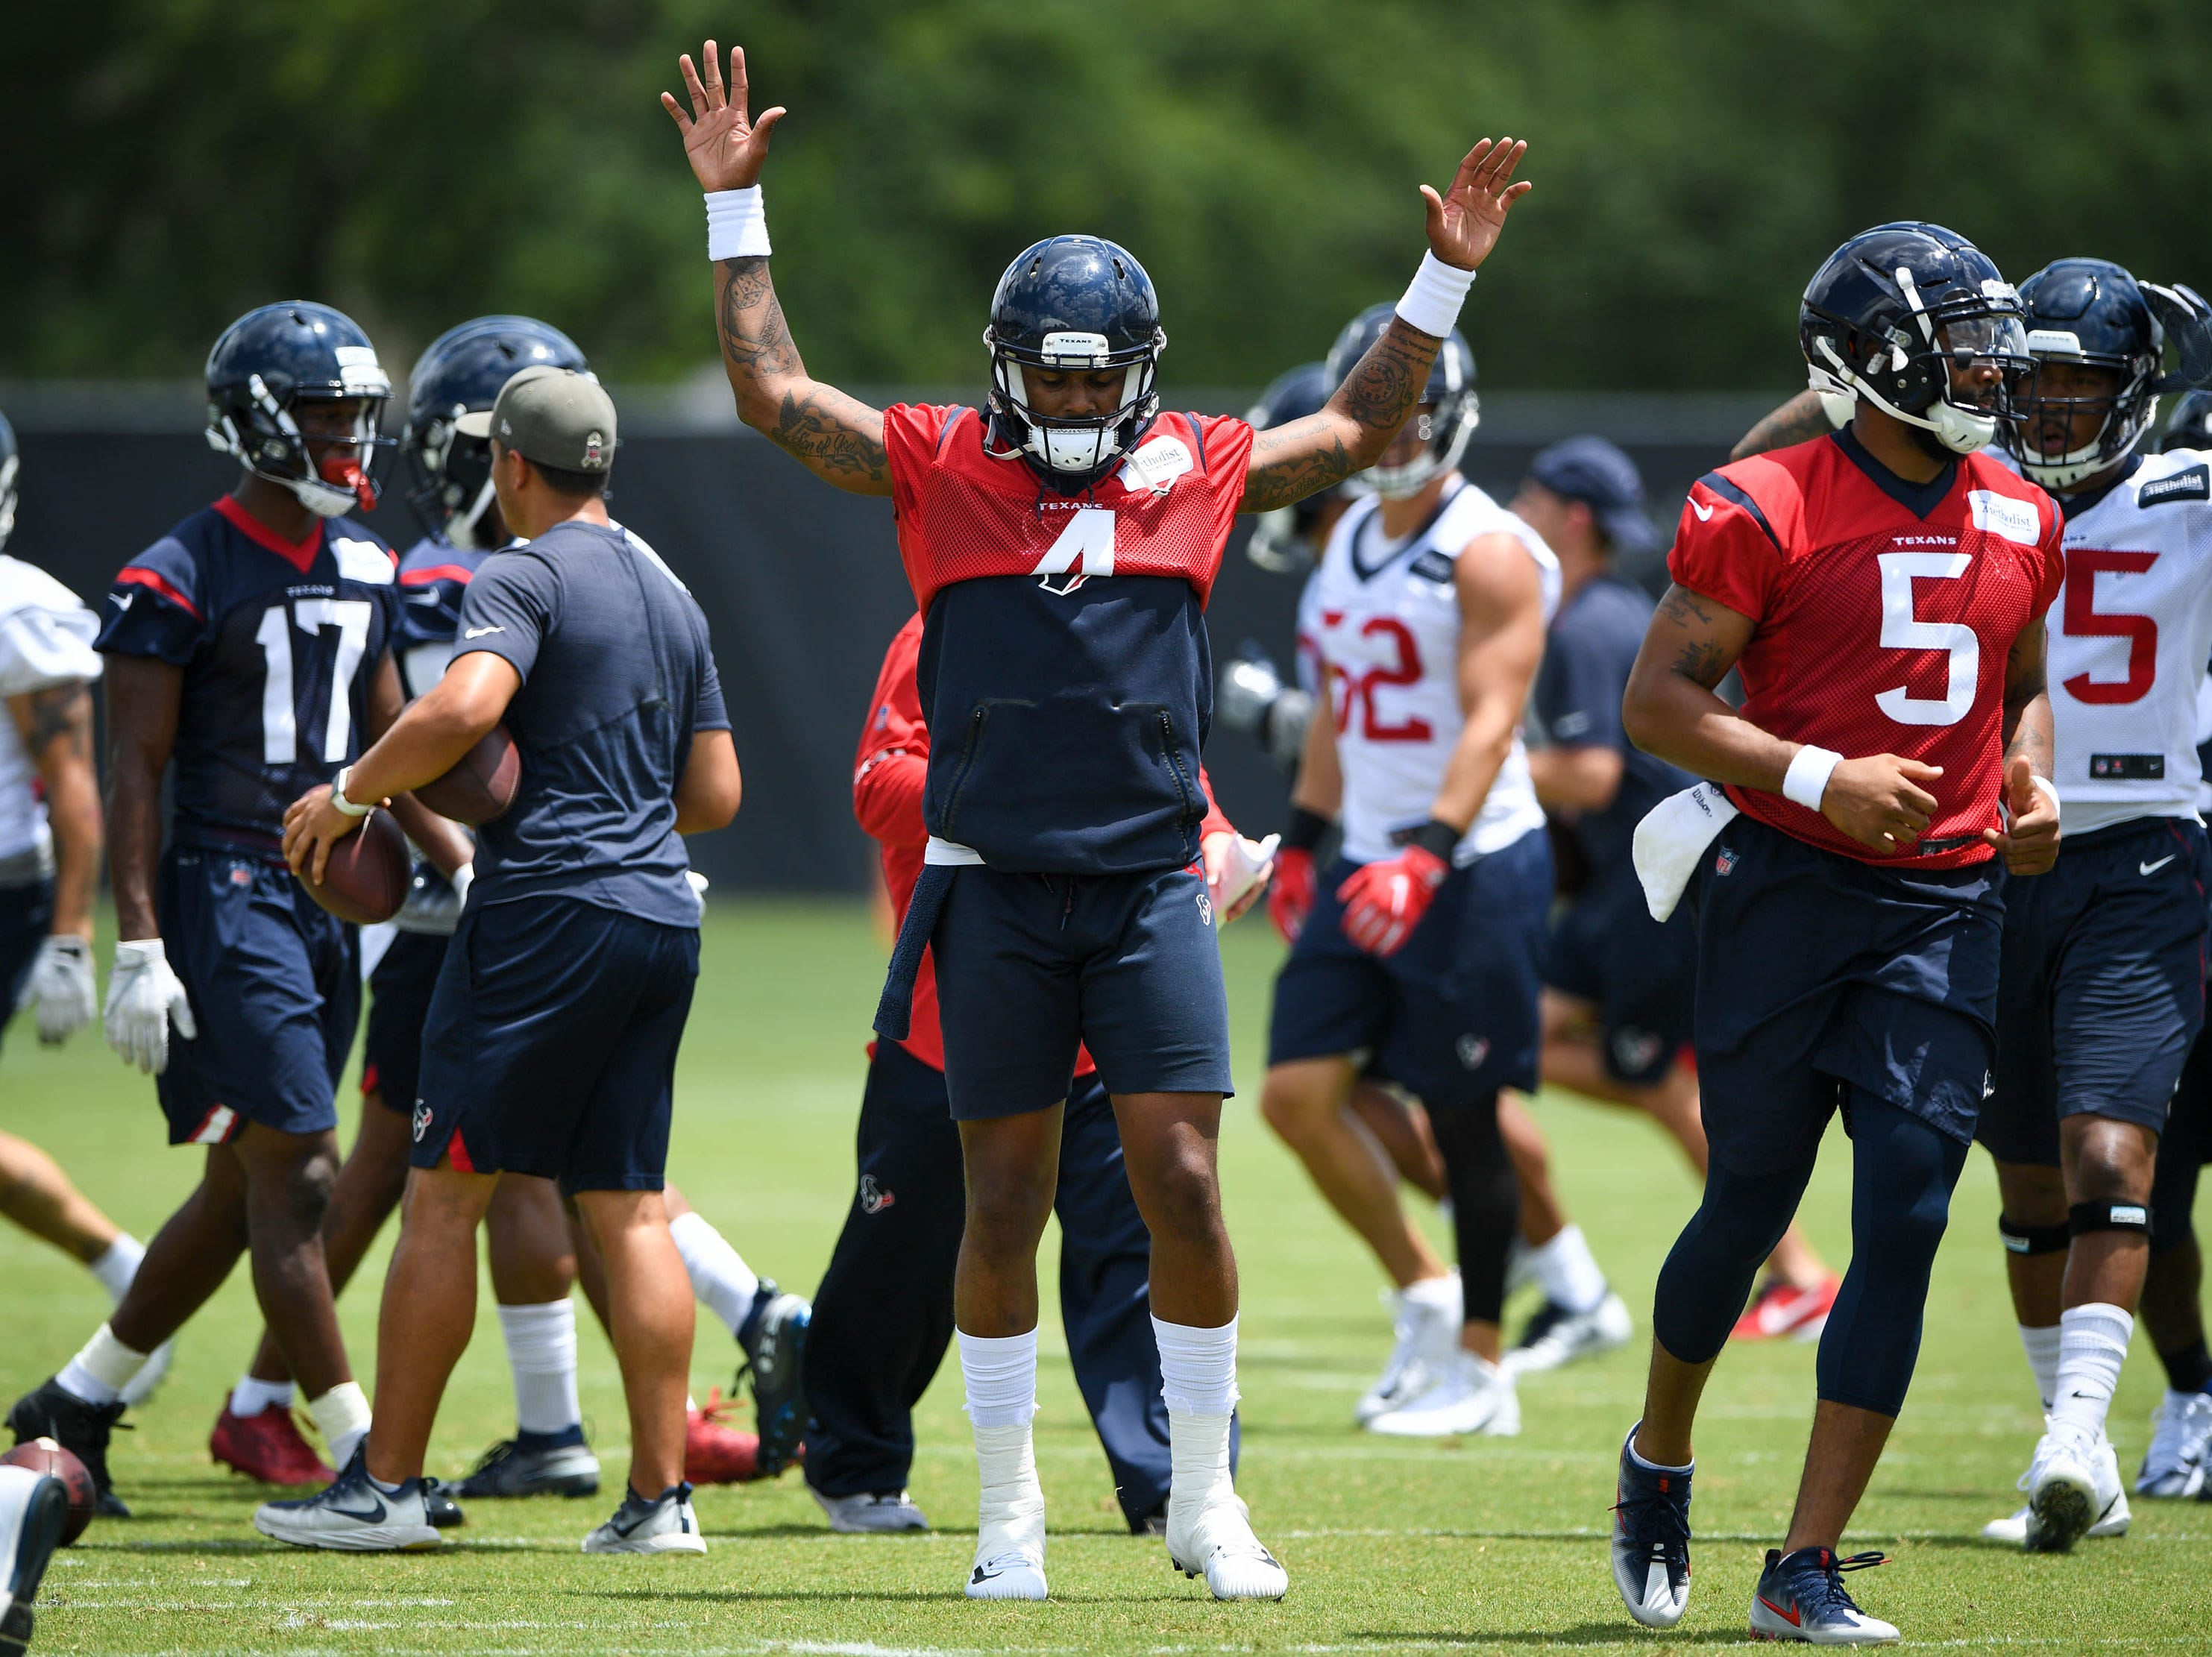 11. Texans (12): Offensive line is a question but perhaps only one of major significance ... assuming Watt, Watson, Mercilus et al. bounce back as expected.